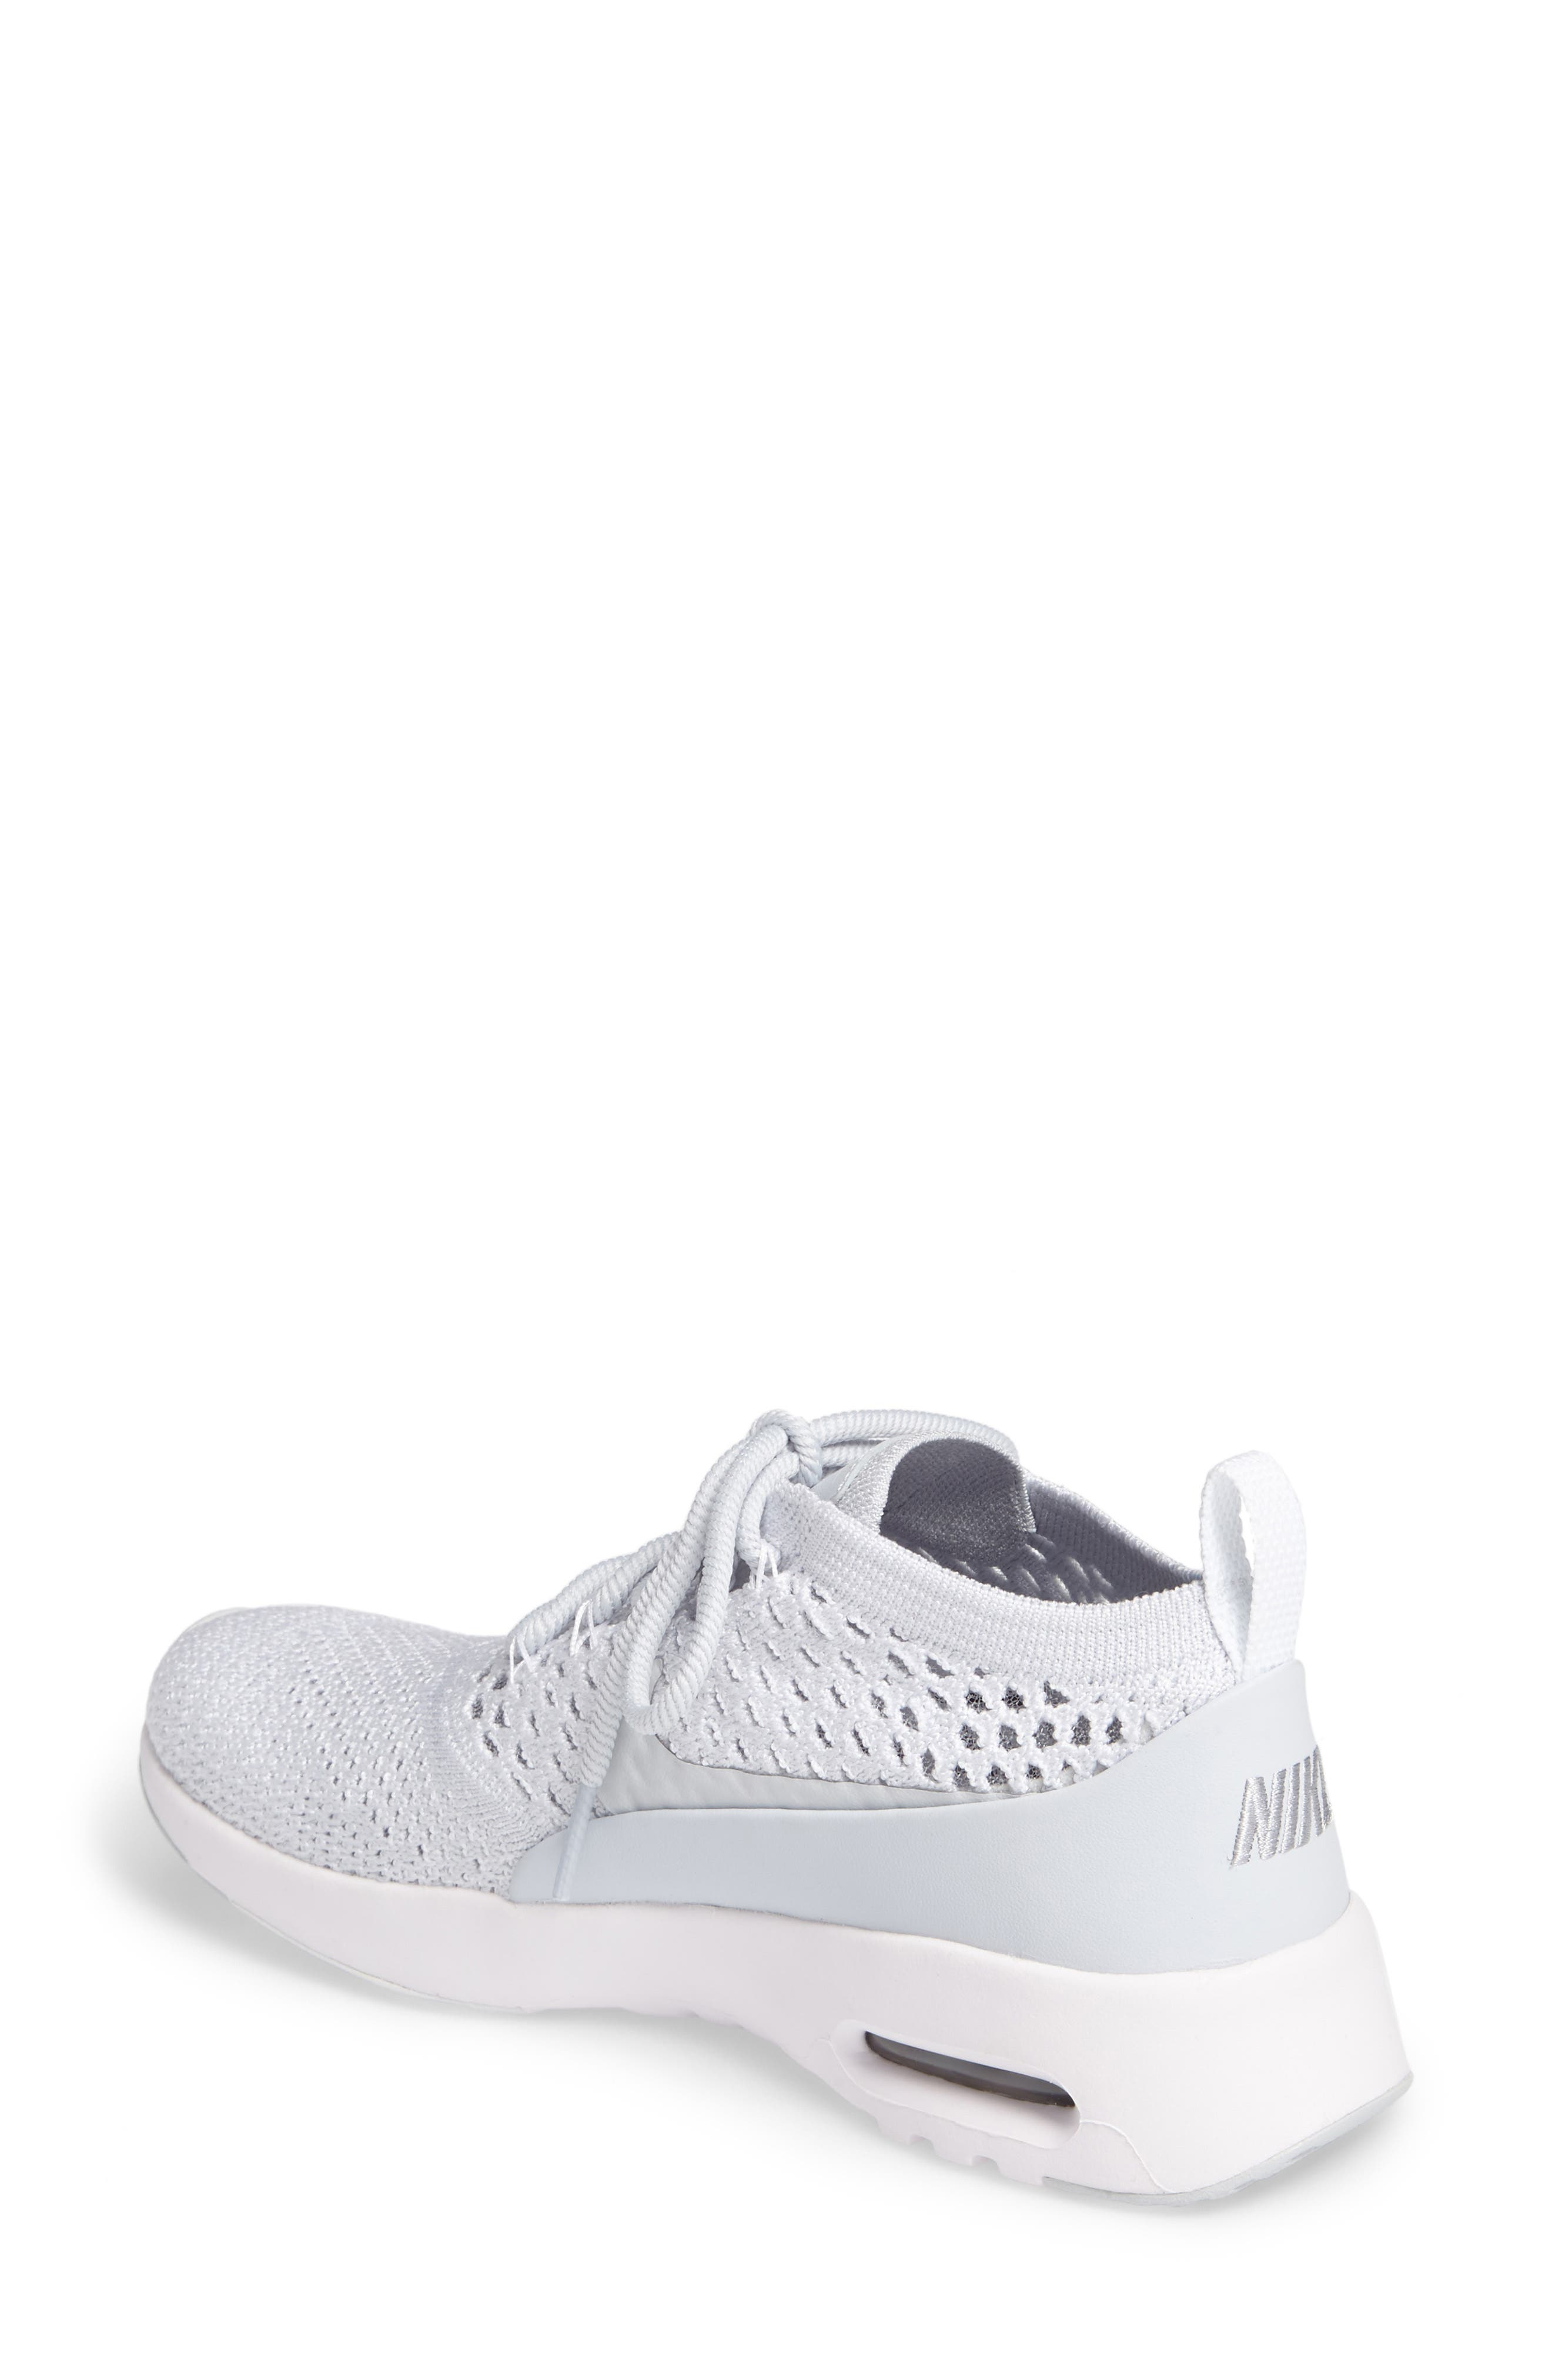 Air Max Thea Ultra Flyknit Sneaker,                             Alternate thumbnail 2, color,                             Pure Platinum/ White